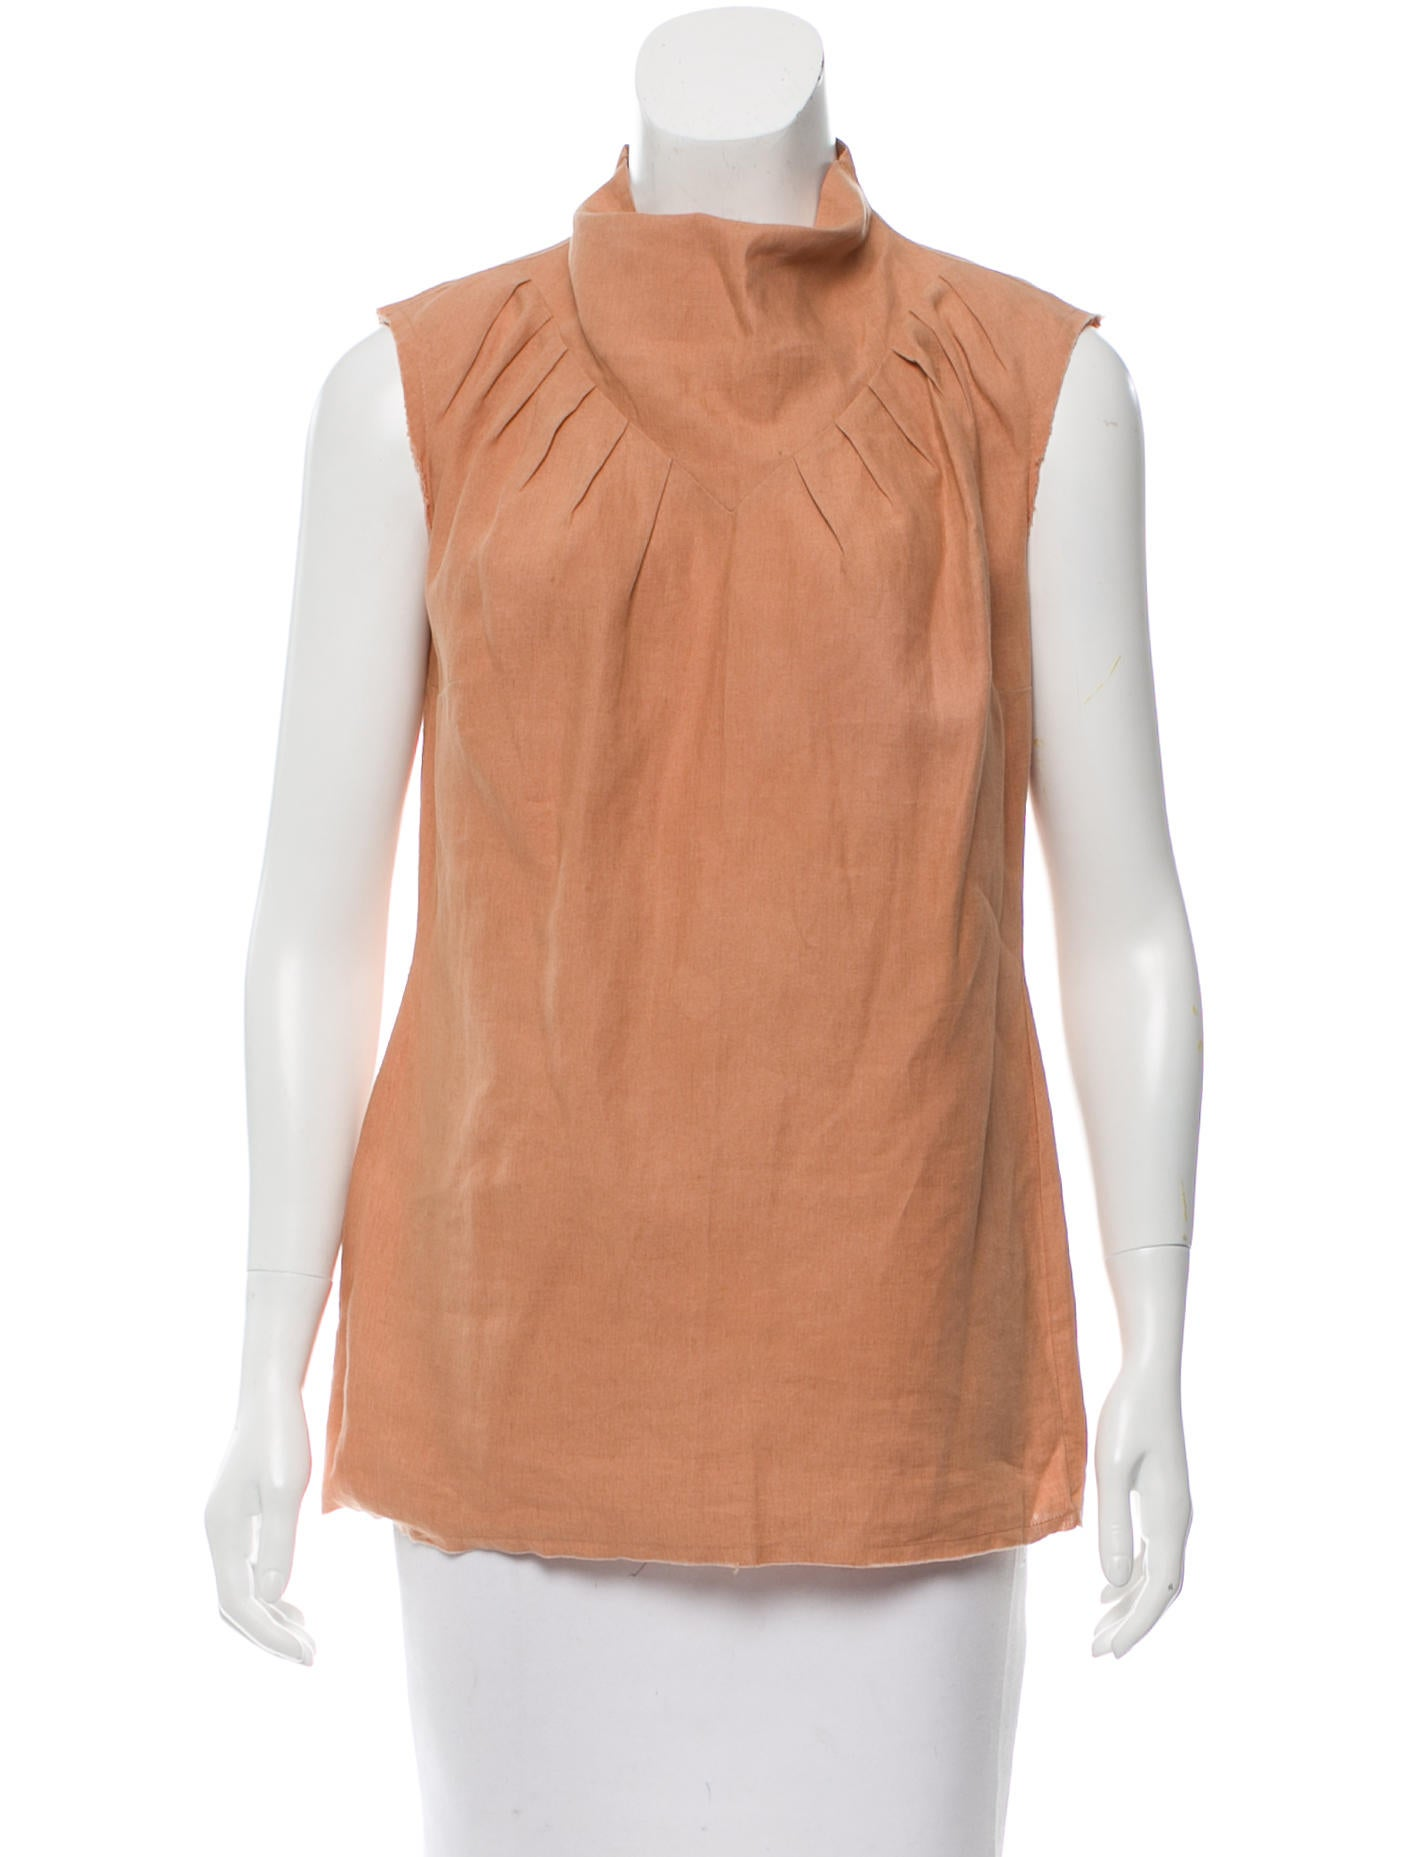 Yves saint laurent sleeveless mock neck top clothing for Sleeveless mock turtleneck shirts